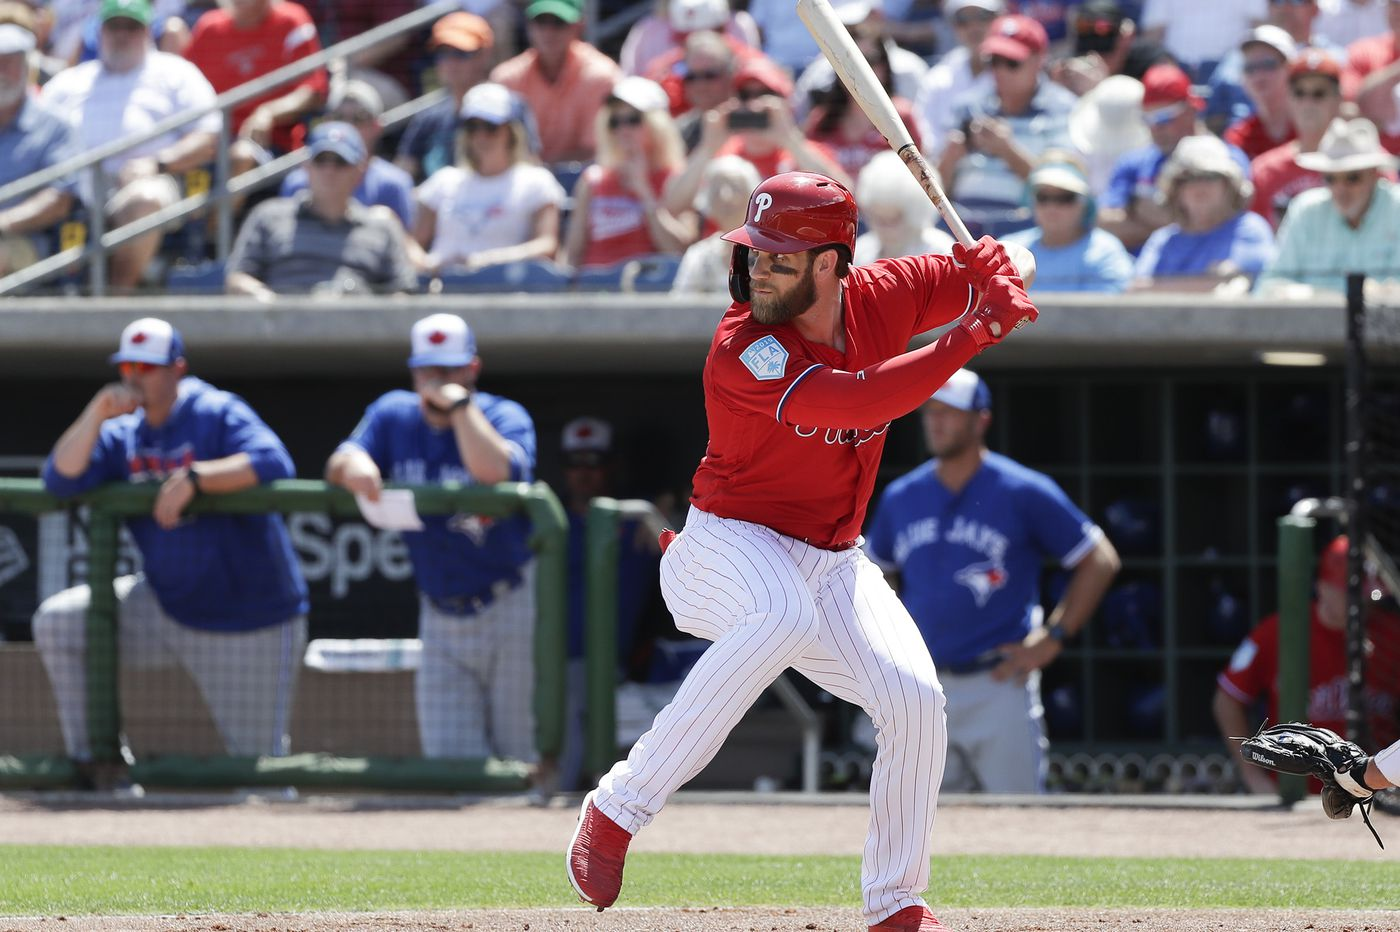 Phillies opening day: Can you guess how many home runs Bryce Harper will hit?